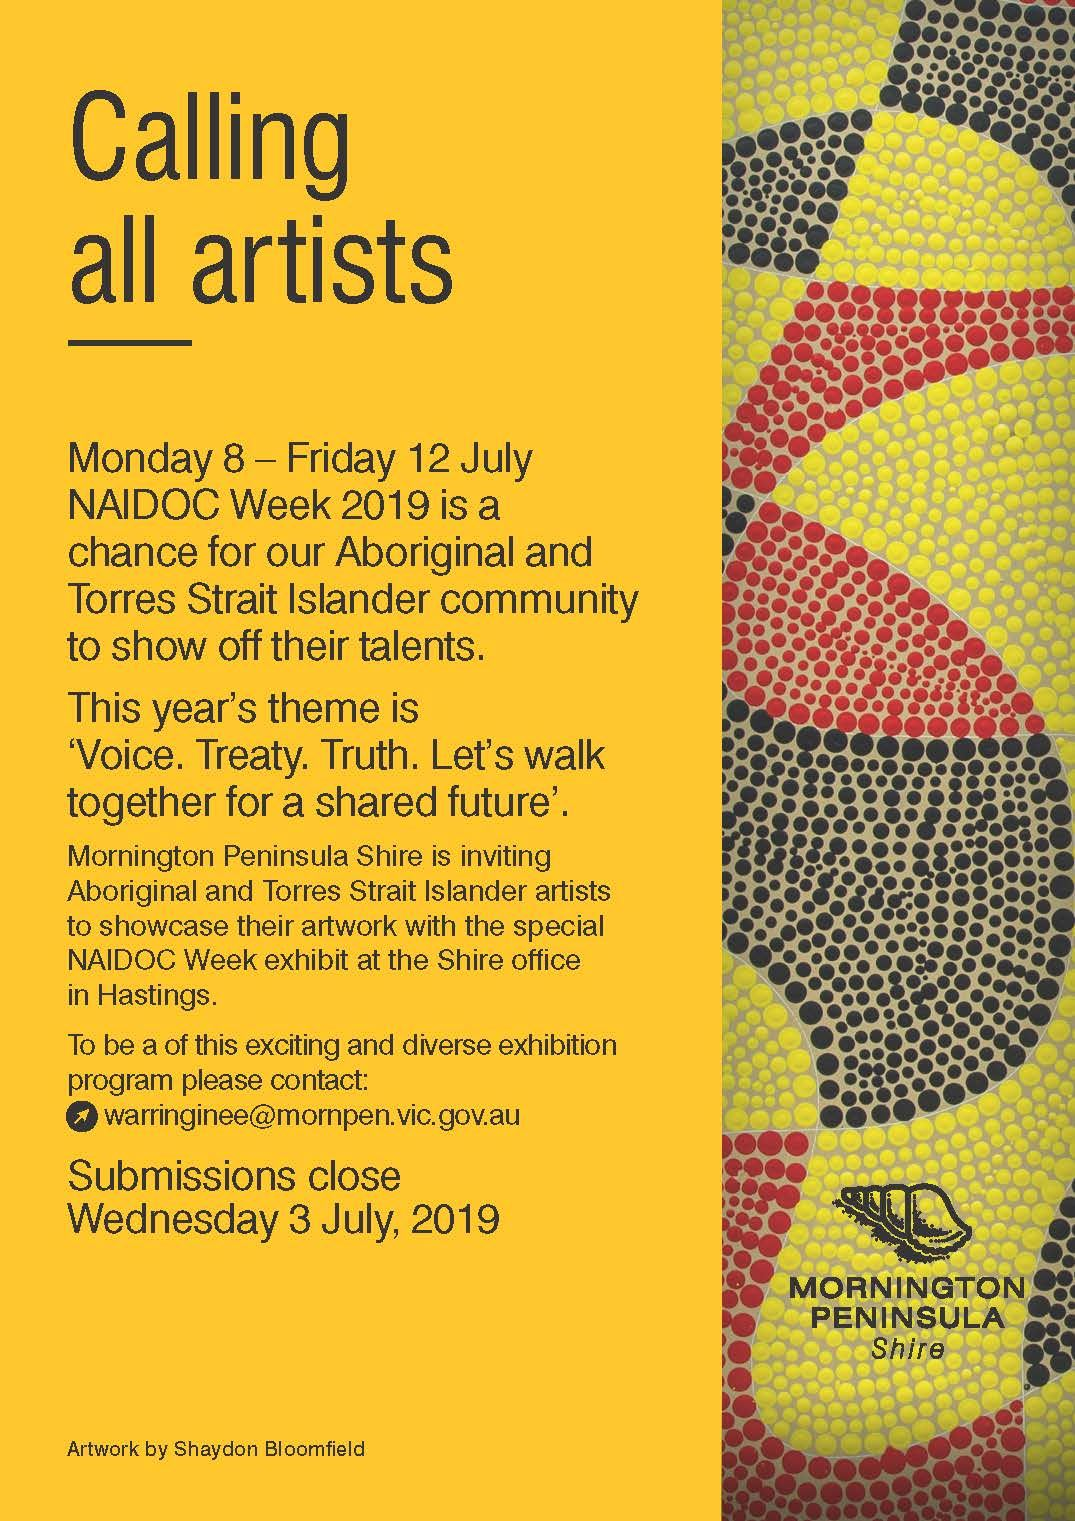 NAIDOC-Art-Submissions-Calling-All-Artists-002.jpg